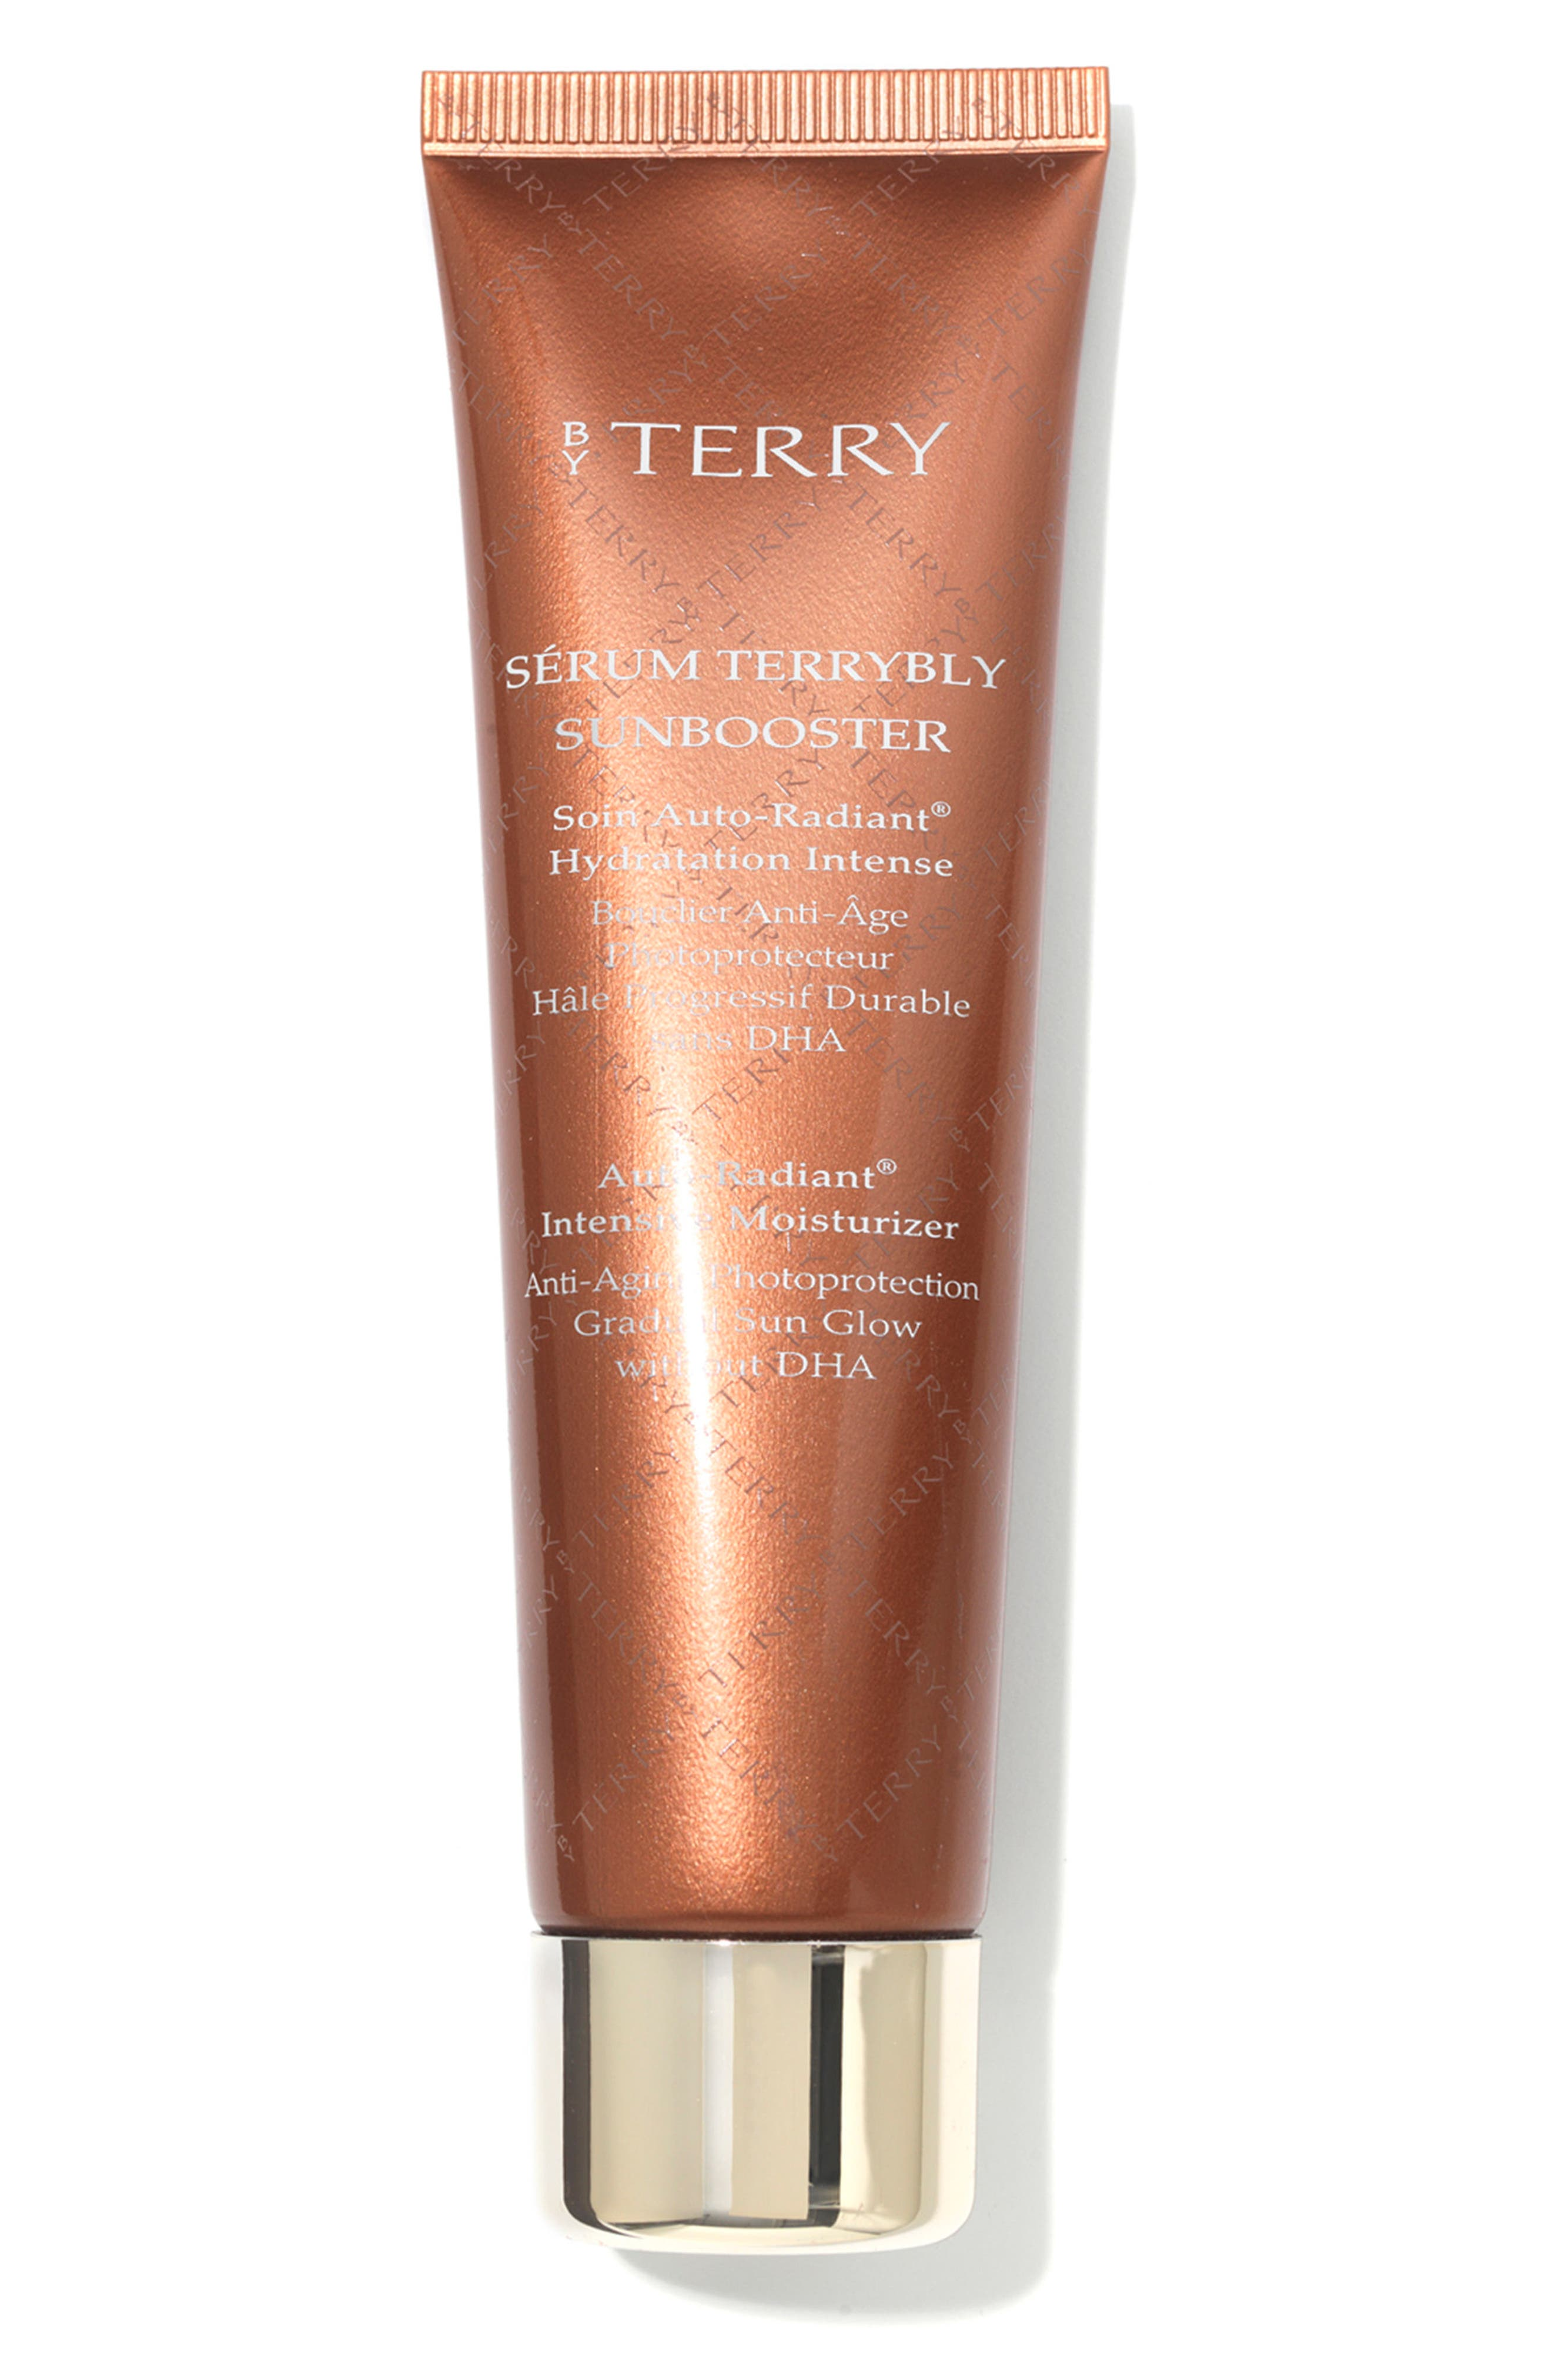 SPACE.NK.apothecary By Terry Serum Terrybly Sun Booster,                             Main thumbnail 1, color,                             No Color